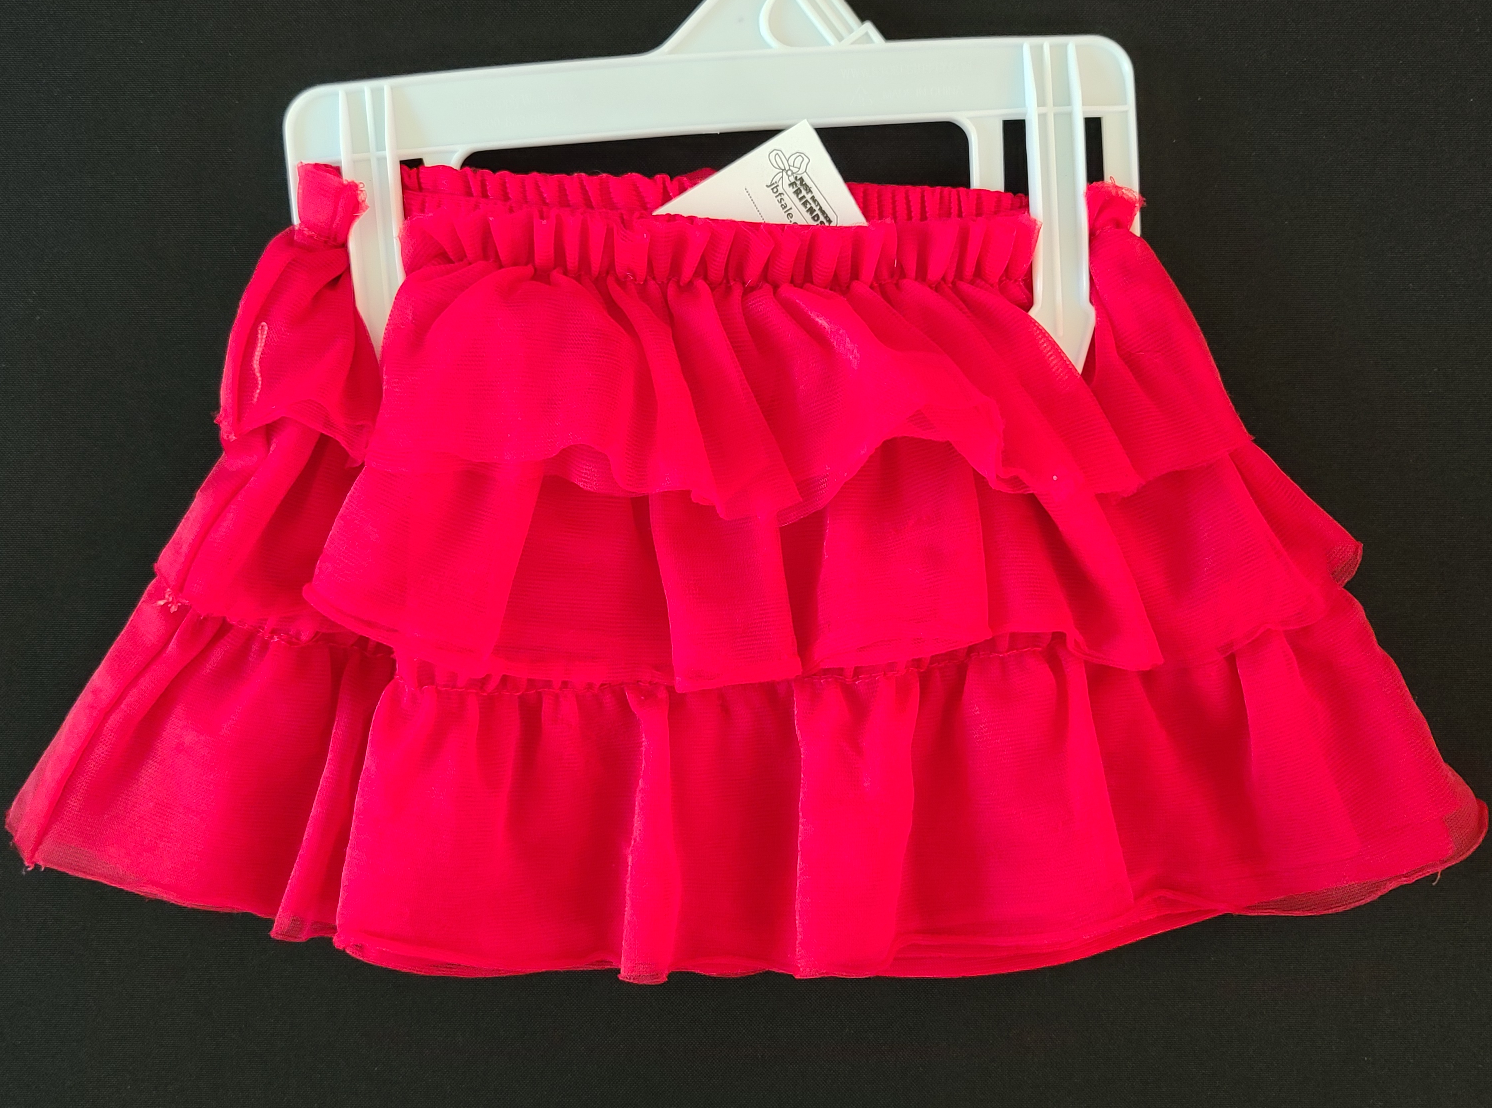 FADED GLORY red ruffle skirt; Girls 12m